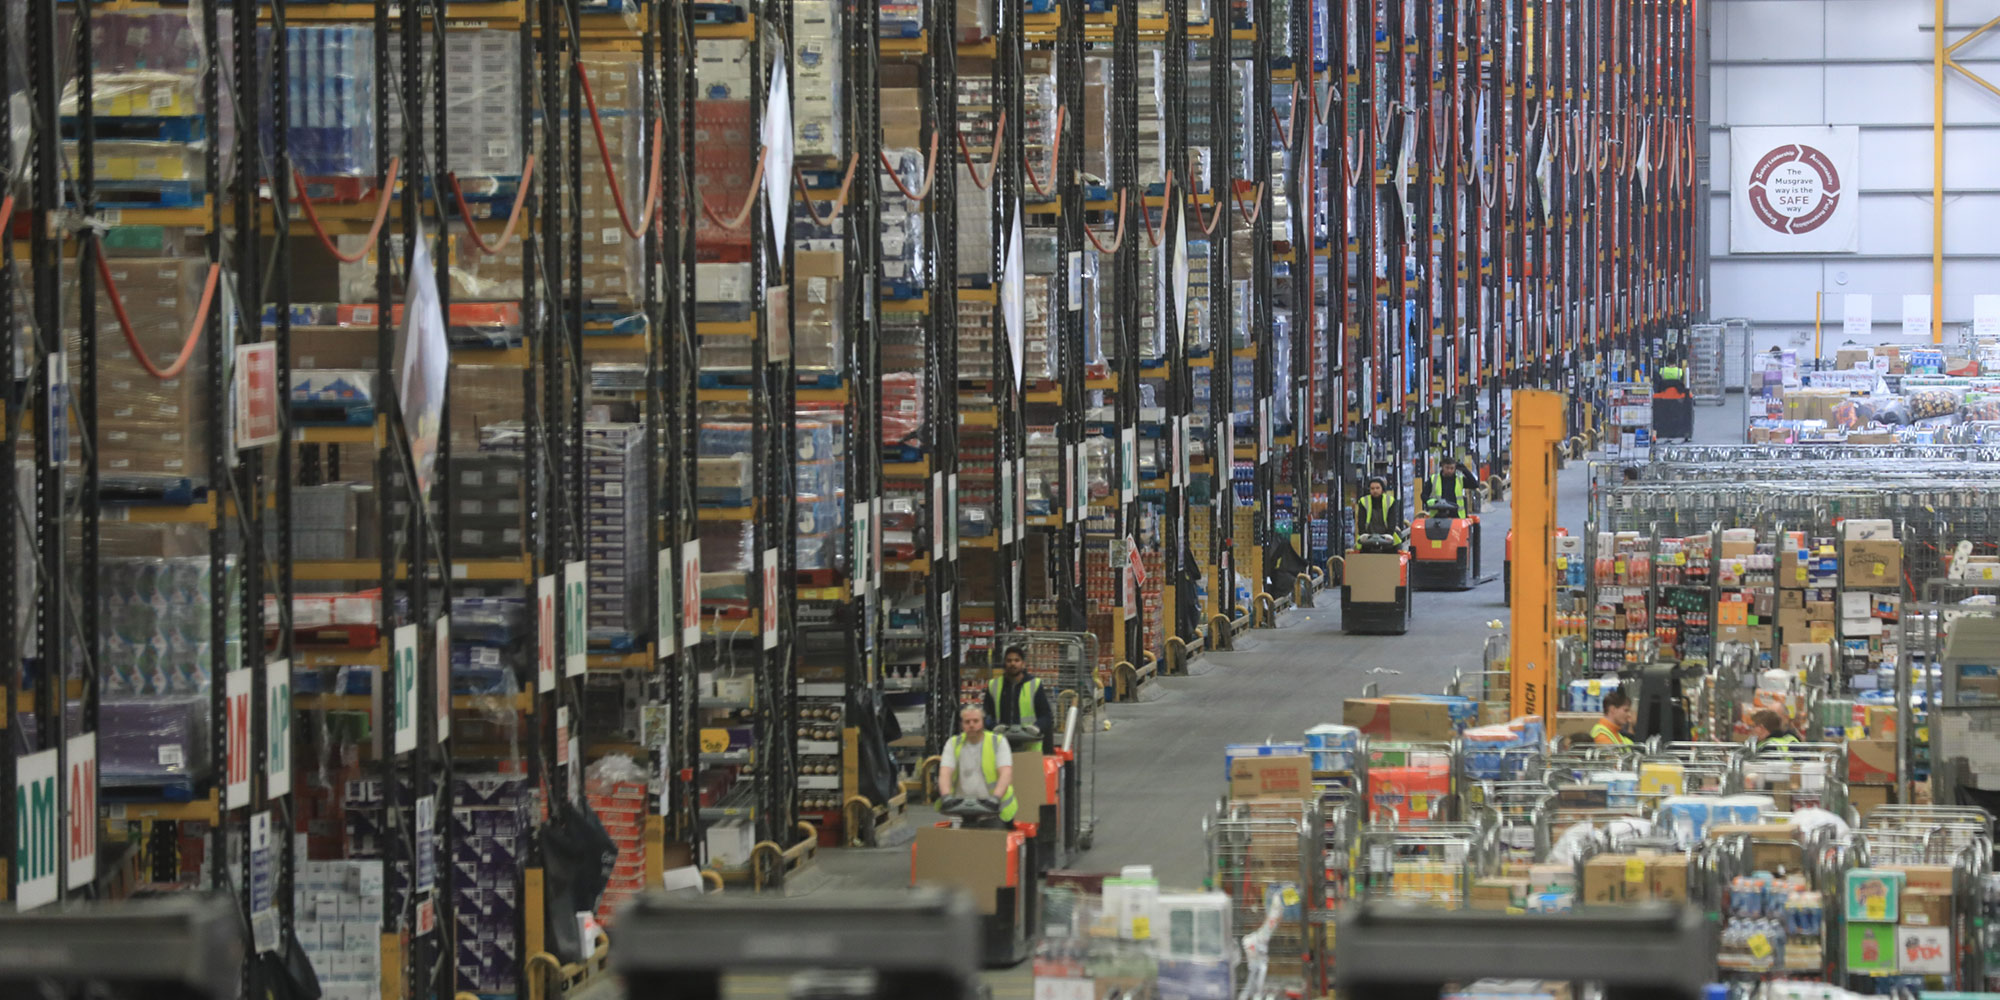 Image of a massive warehouse